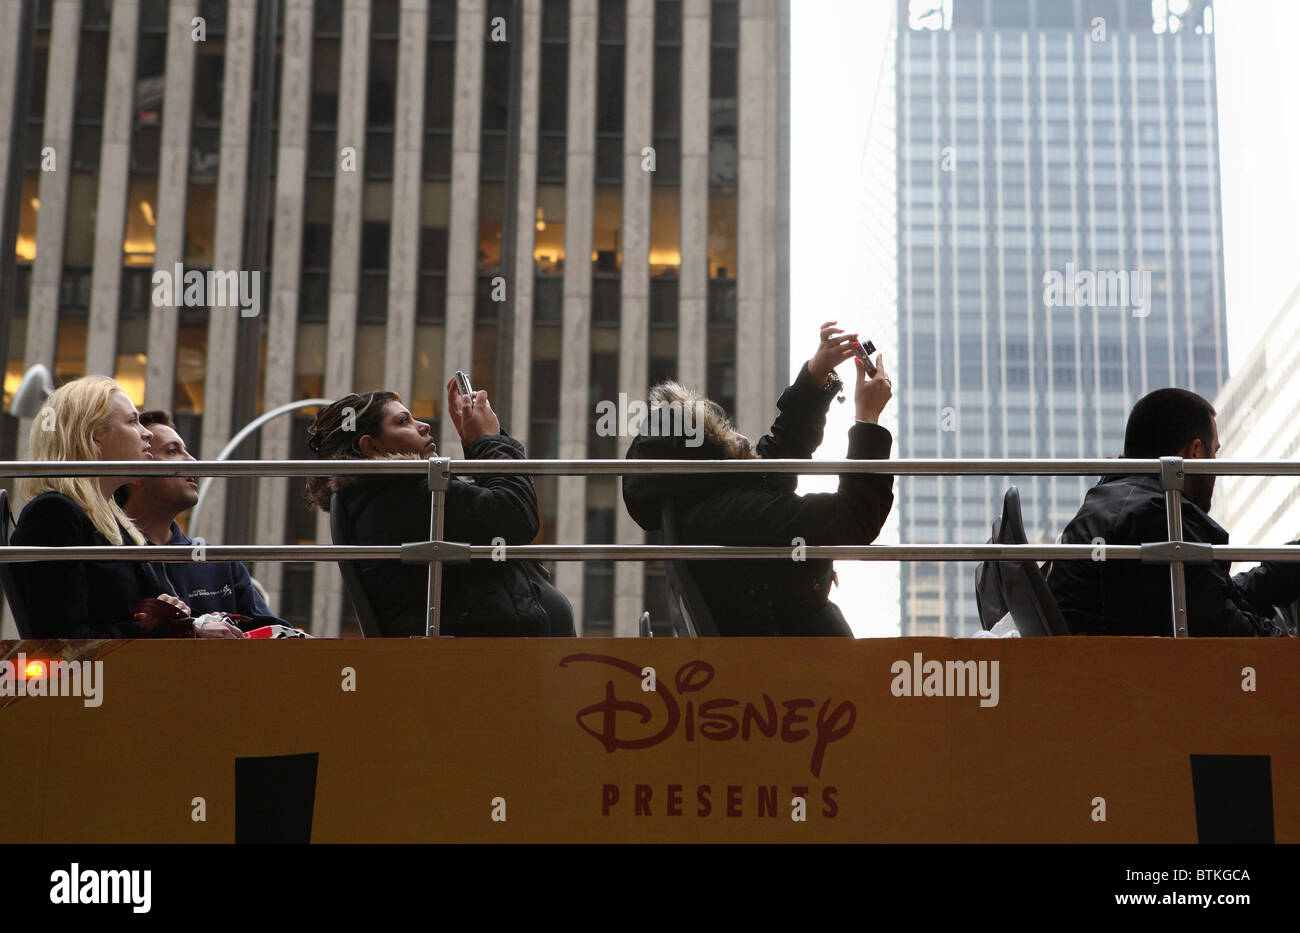 Tourists on a sightseeing bus, New York City, USA - Stock Image